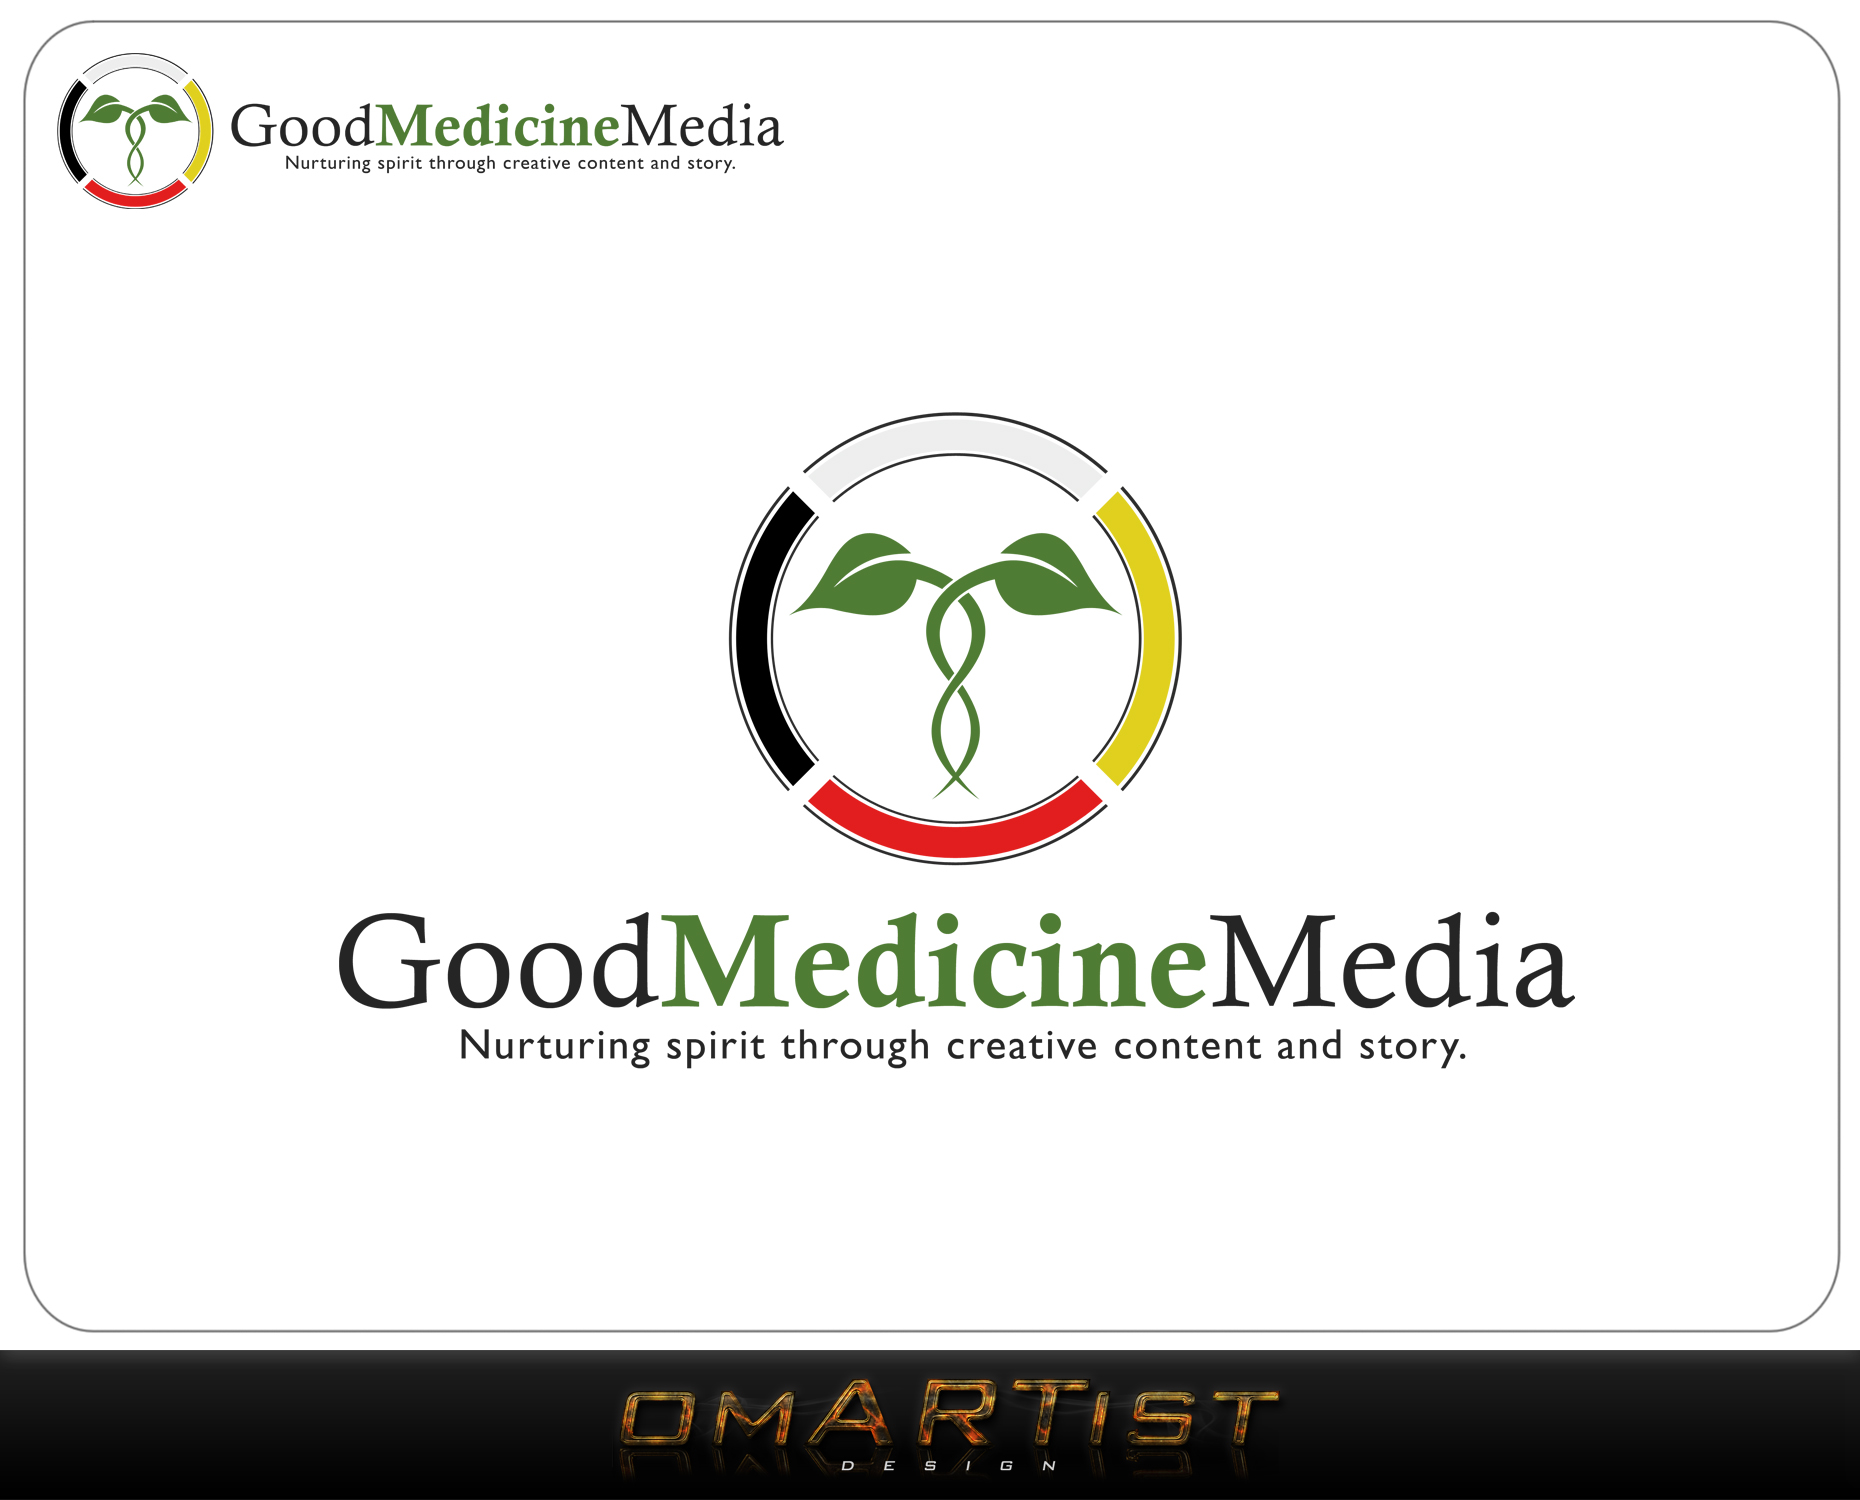 Logo Design by omARTist - Entry No. 158 in the Logo Design Contest Good Medicine Media Logo Design.